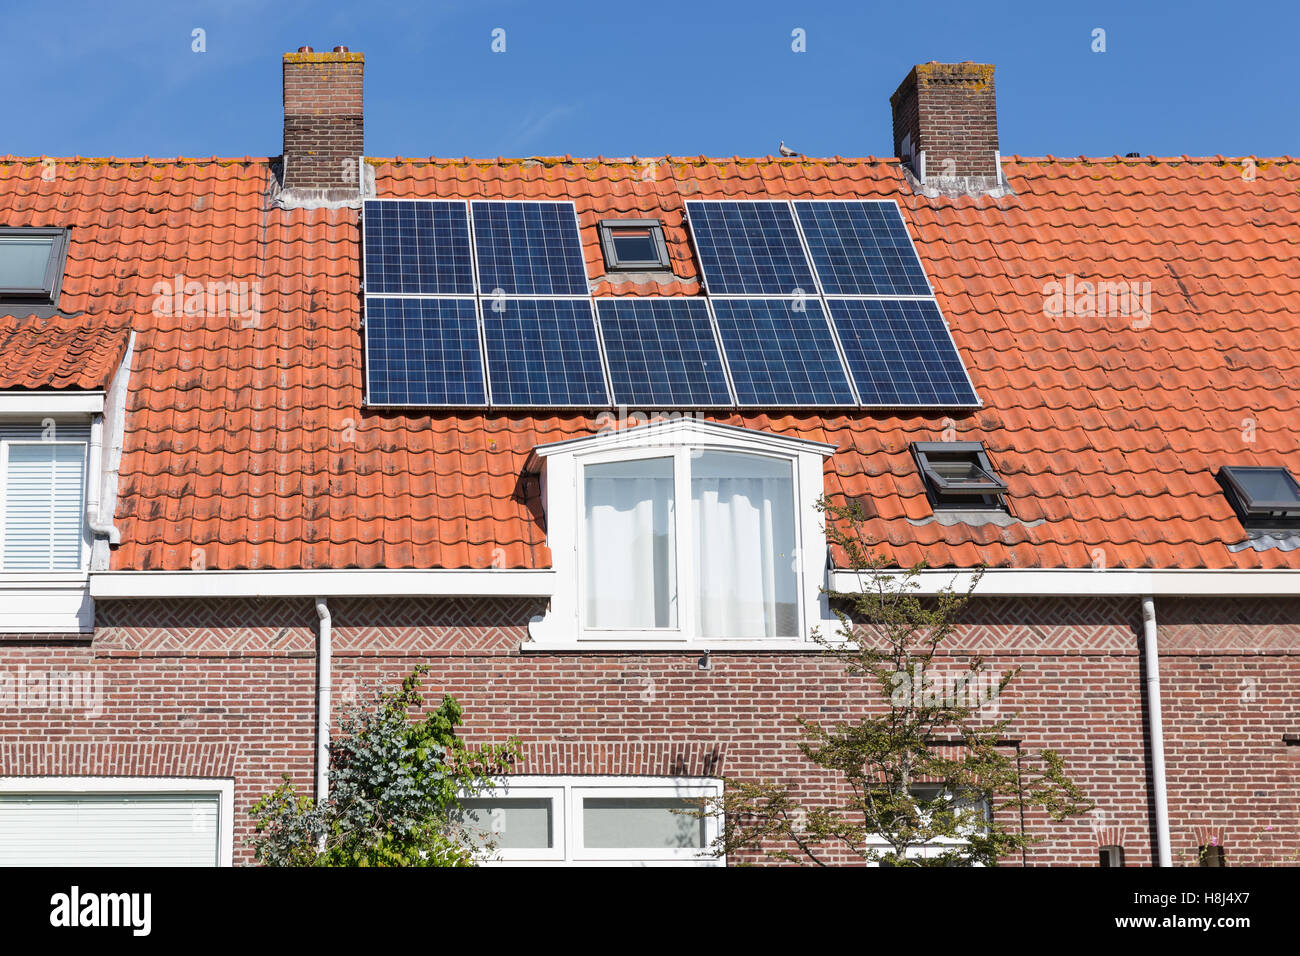 solar energy panel home family stockfotos solar energy panel home family bilder alamy. Black Bedroom Furniture Sets. Home Design Ideas